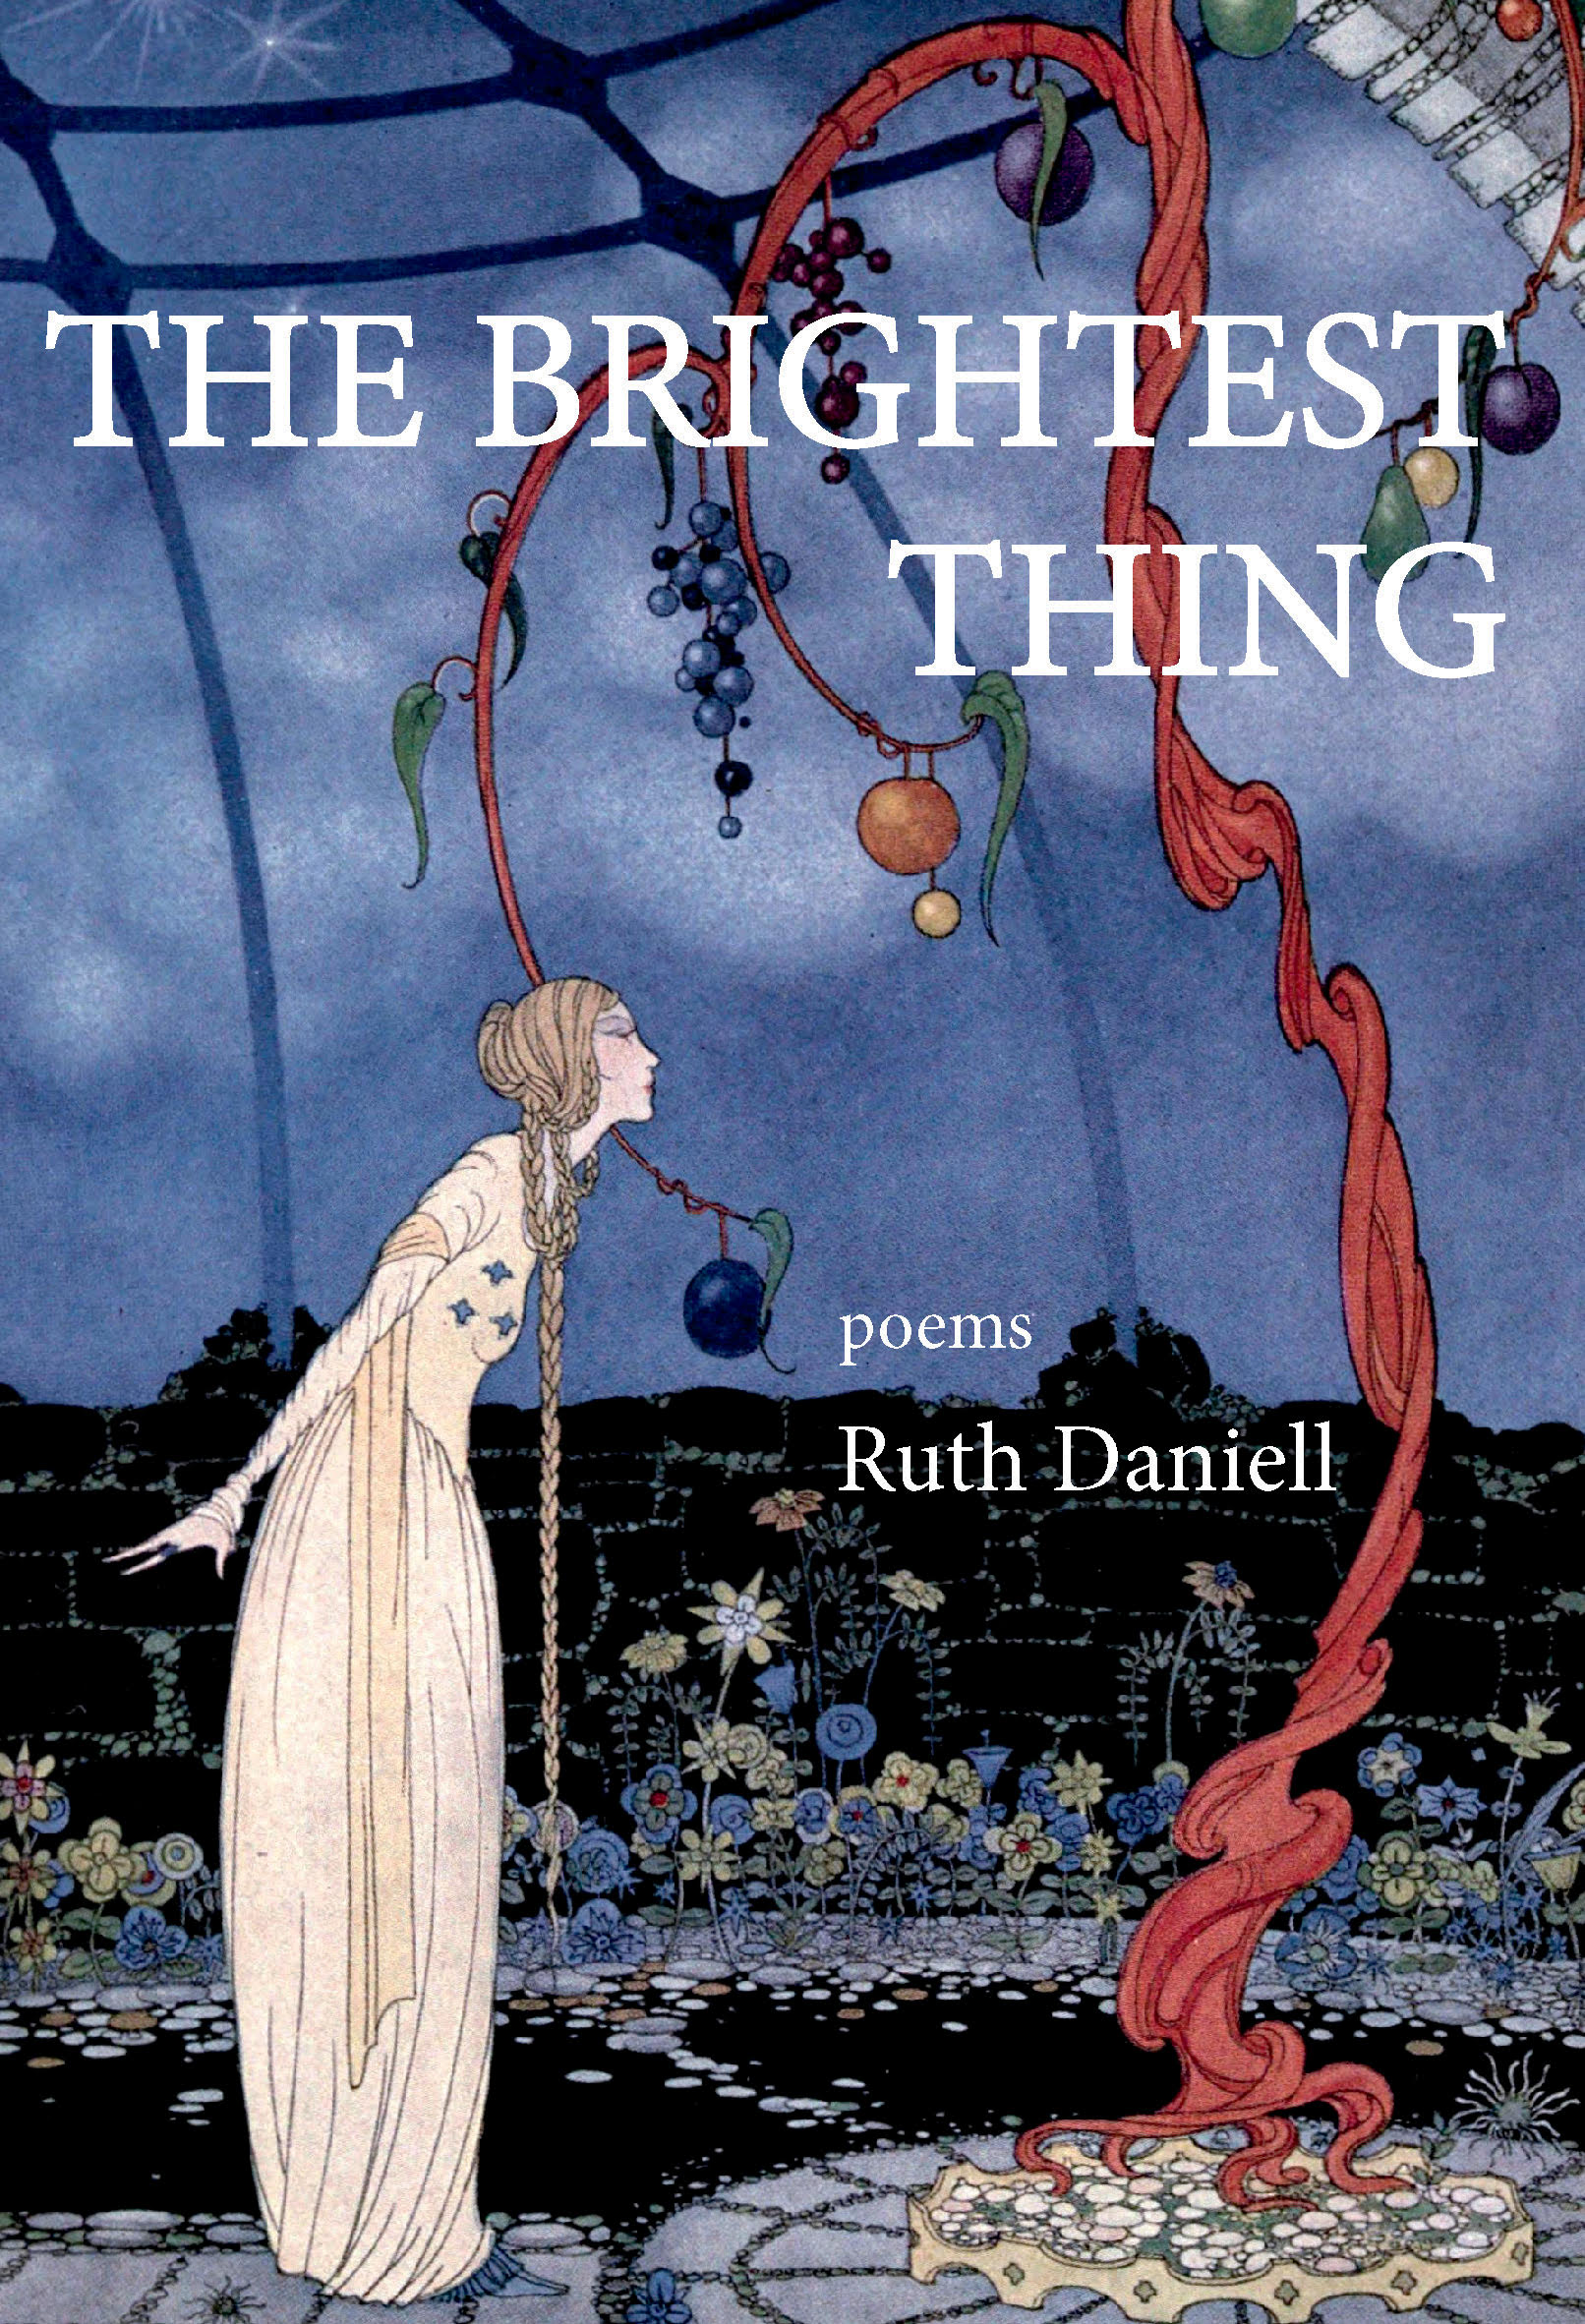 TheBrightestThingCOVERfinal